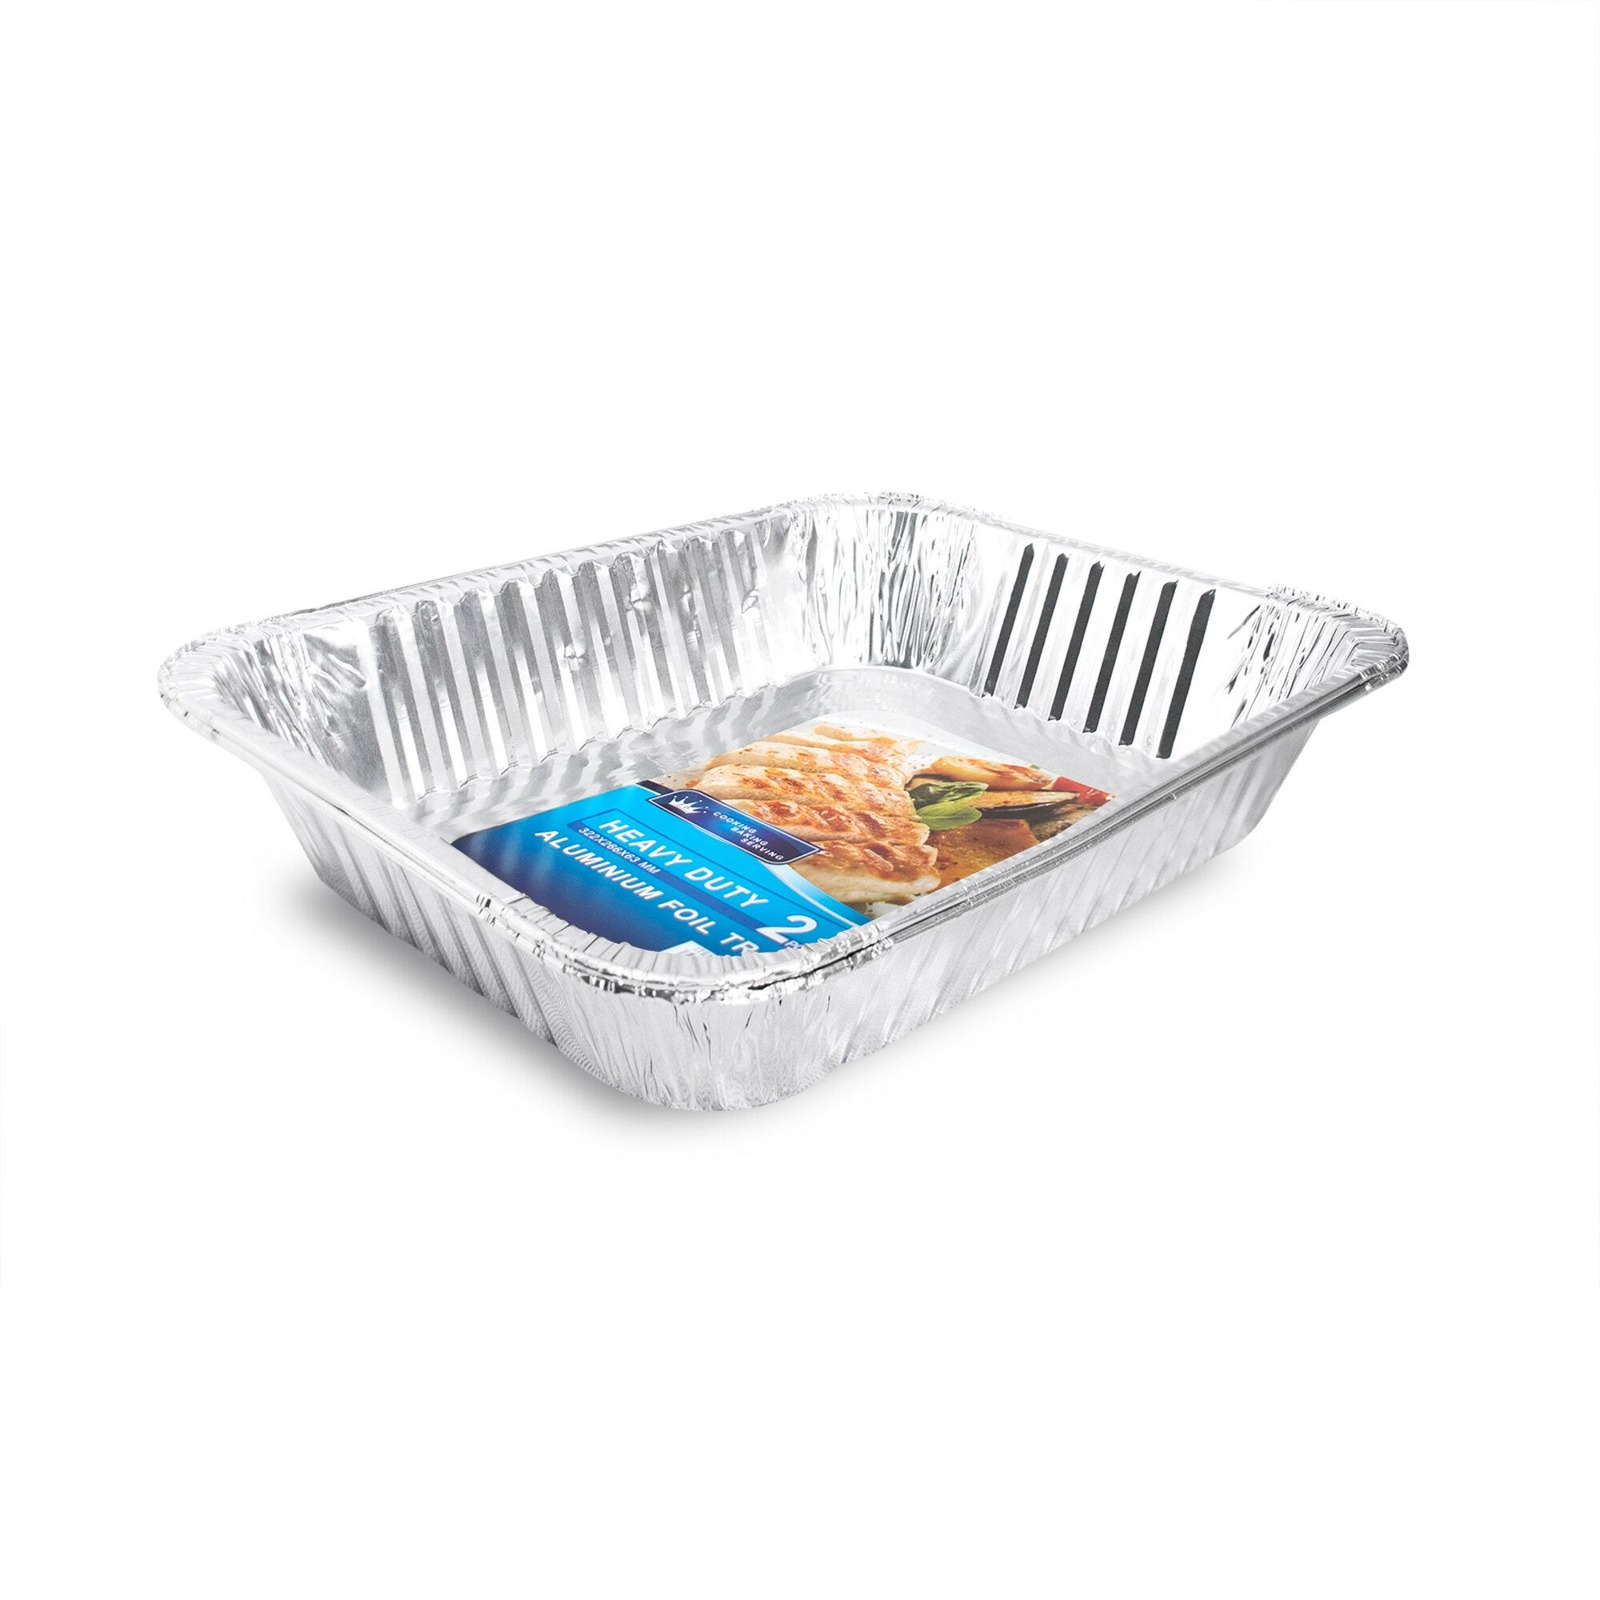 HOUZE Medium Aluminium Foil Tray (Set of 2)